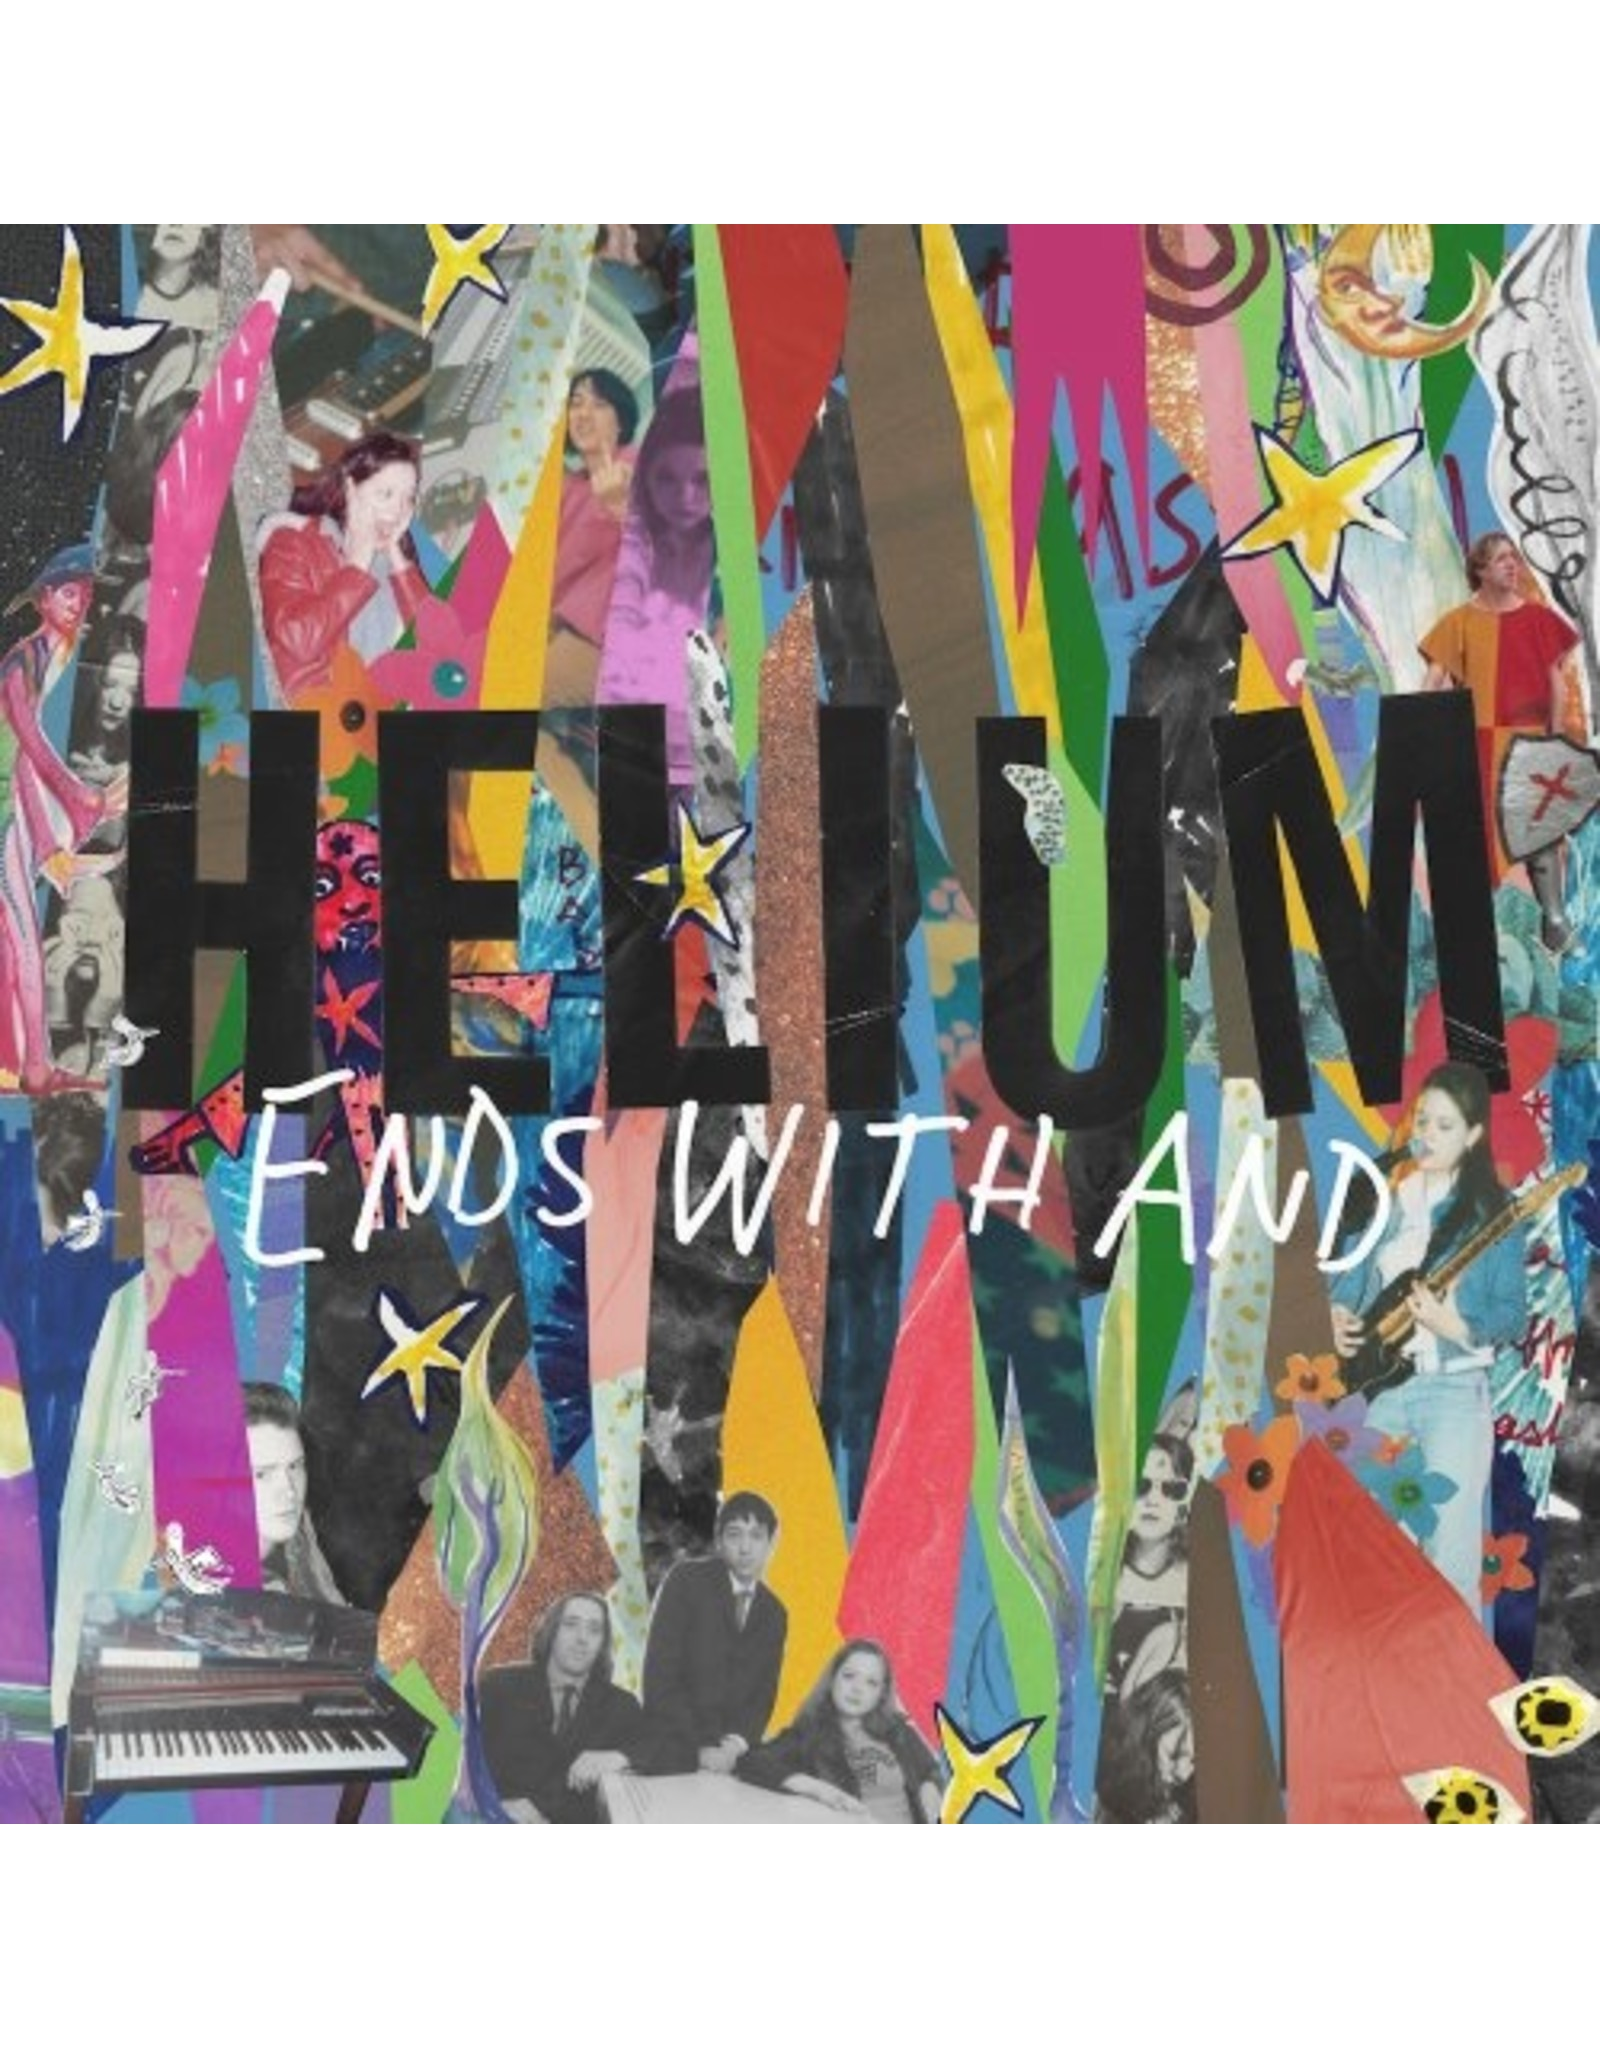 New Vinyl Helium - Ends With And 2LP